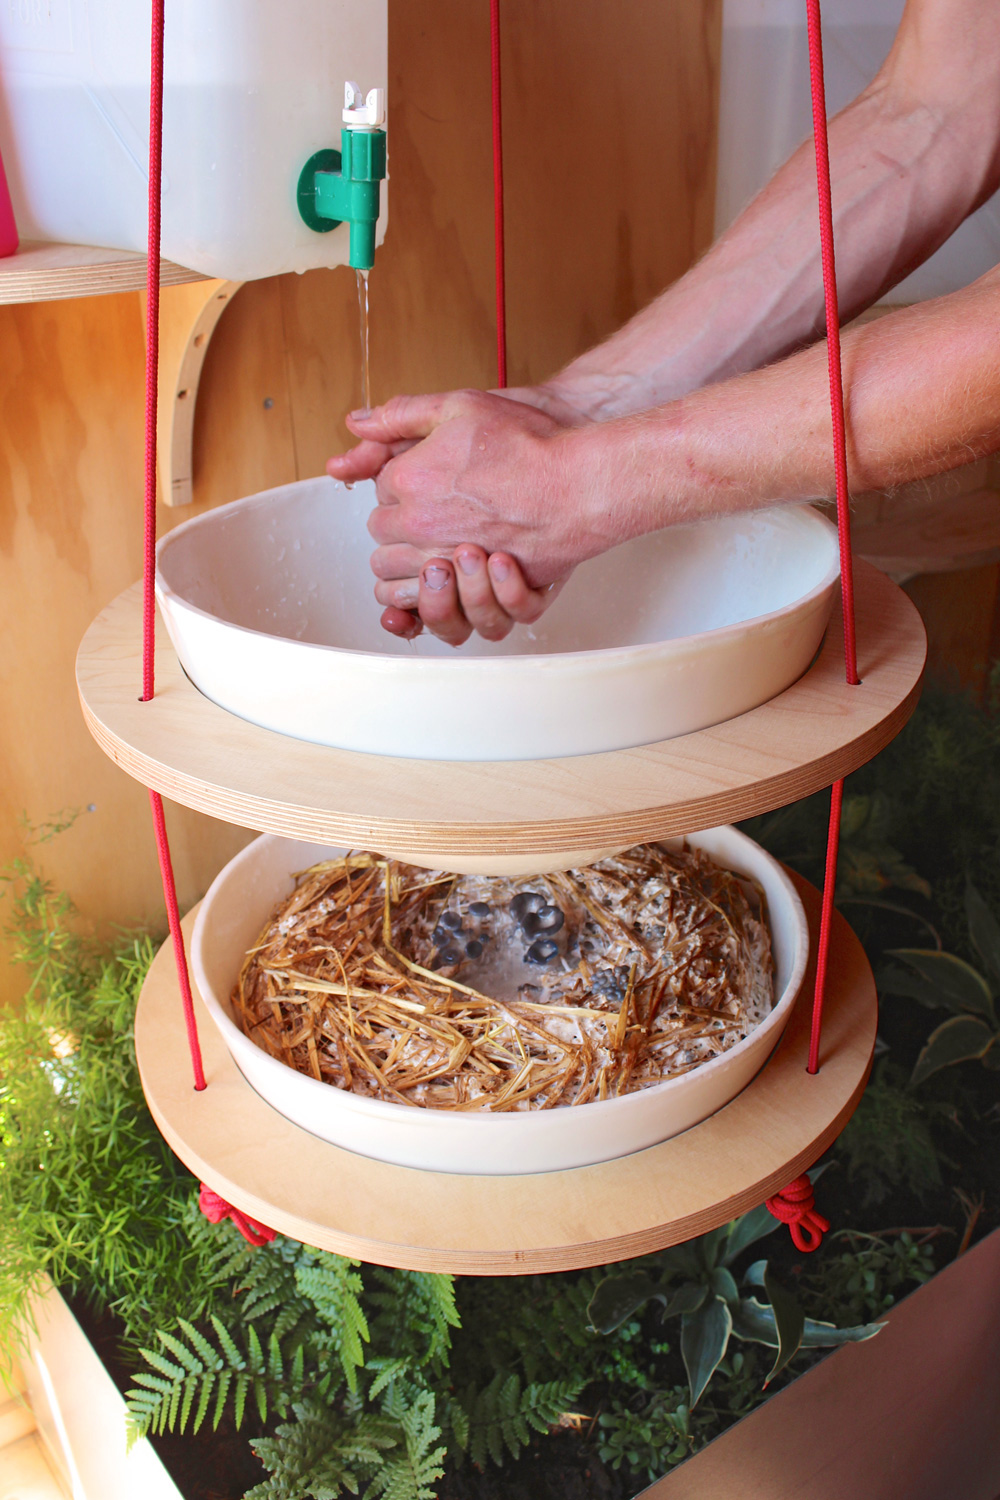 Hanging sink in use